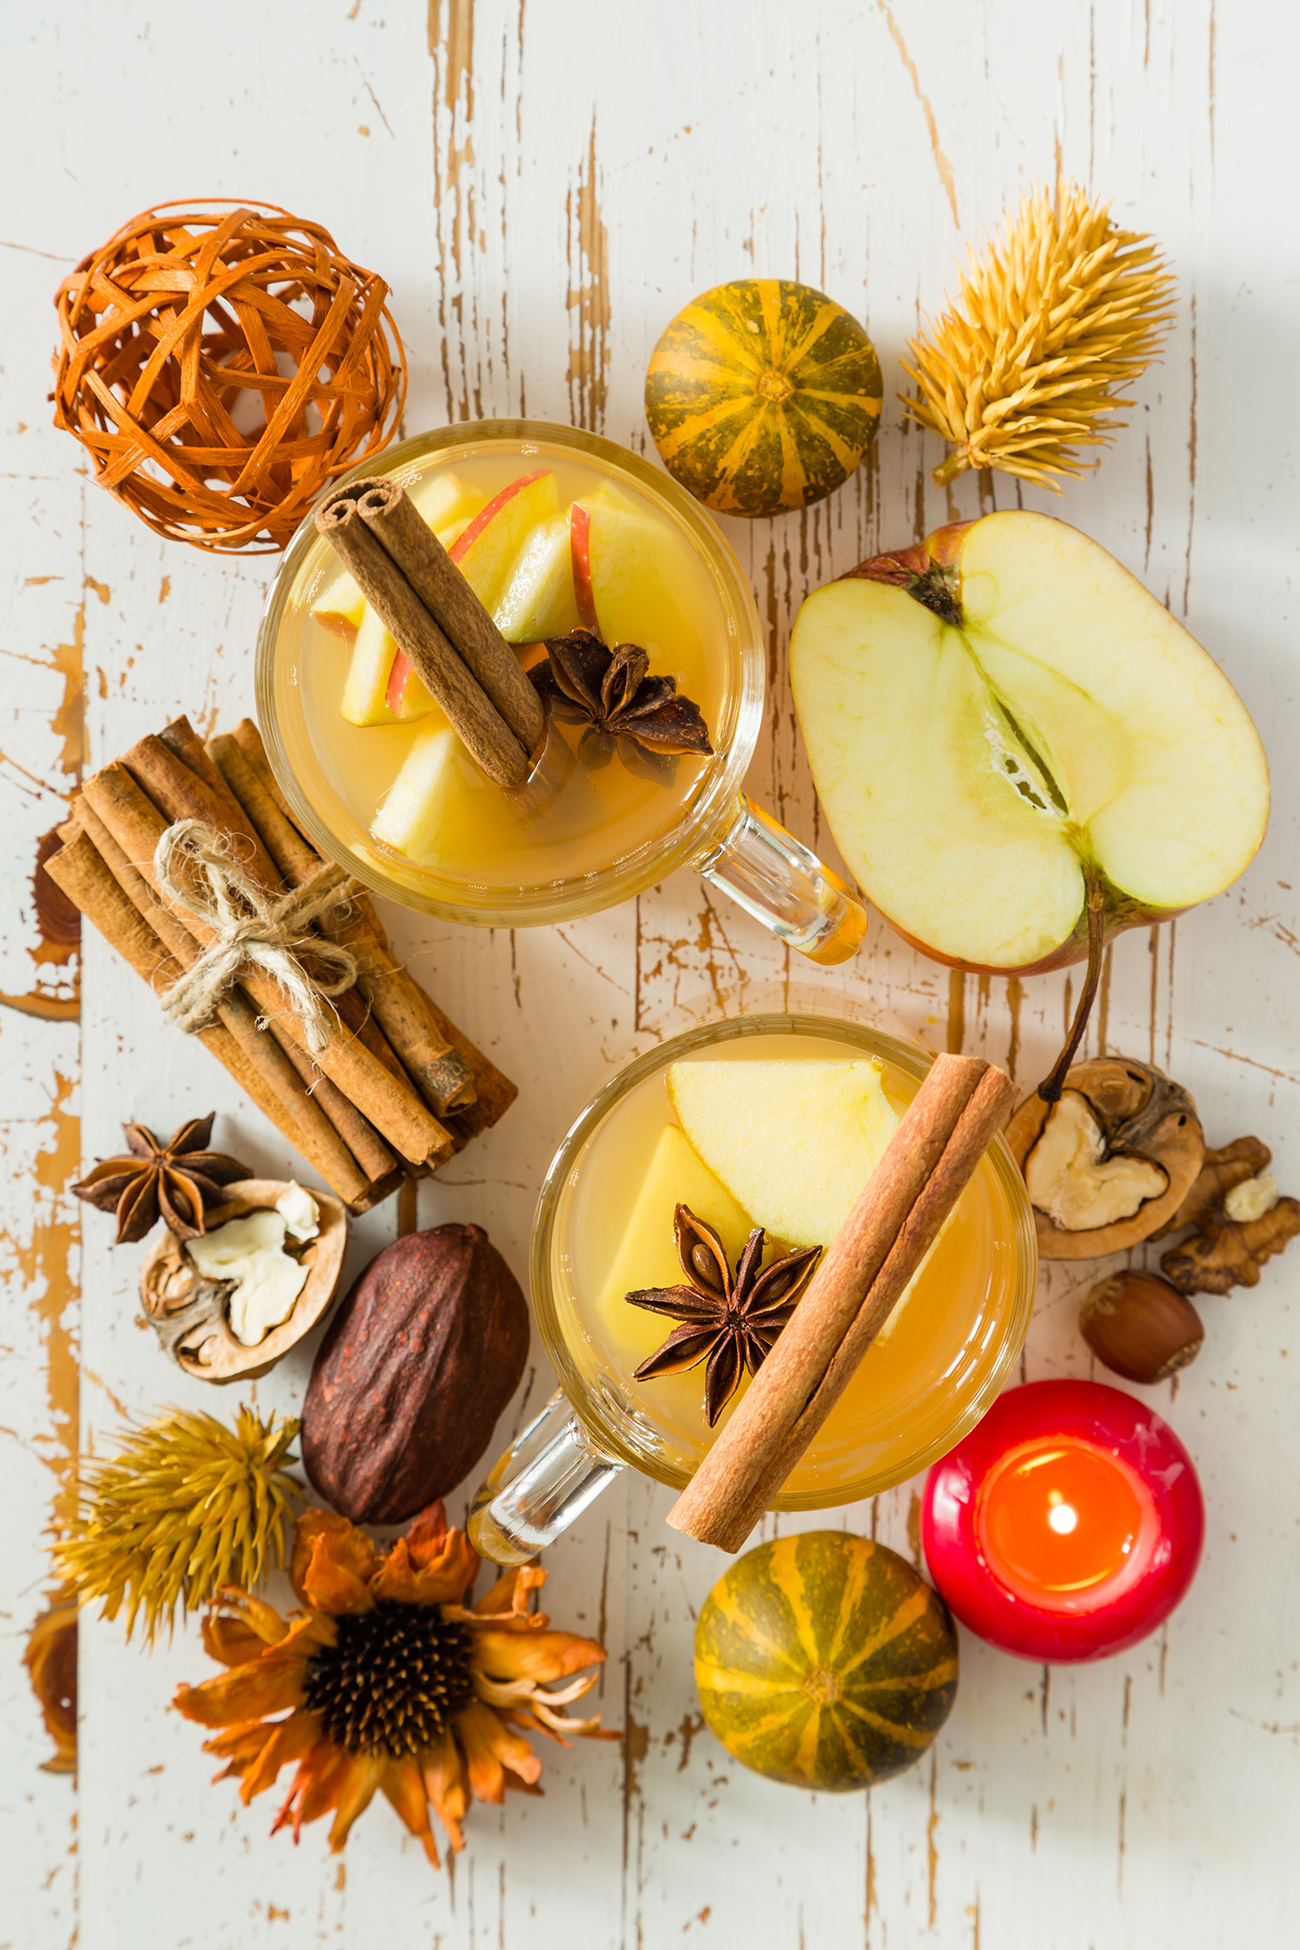 The Most Natural Ways to Make Your Home Smell Like Fall